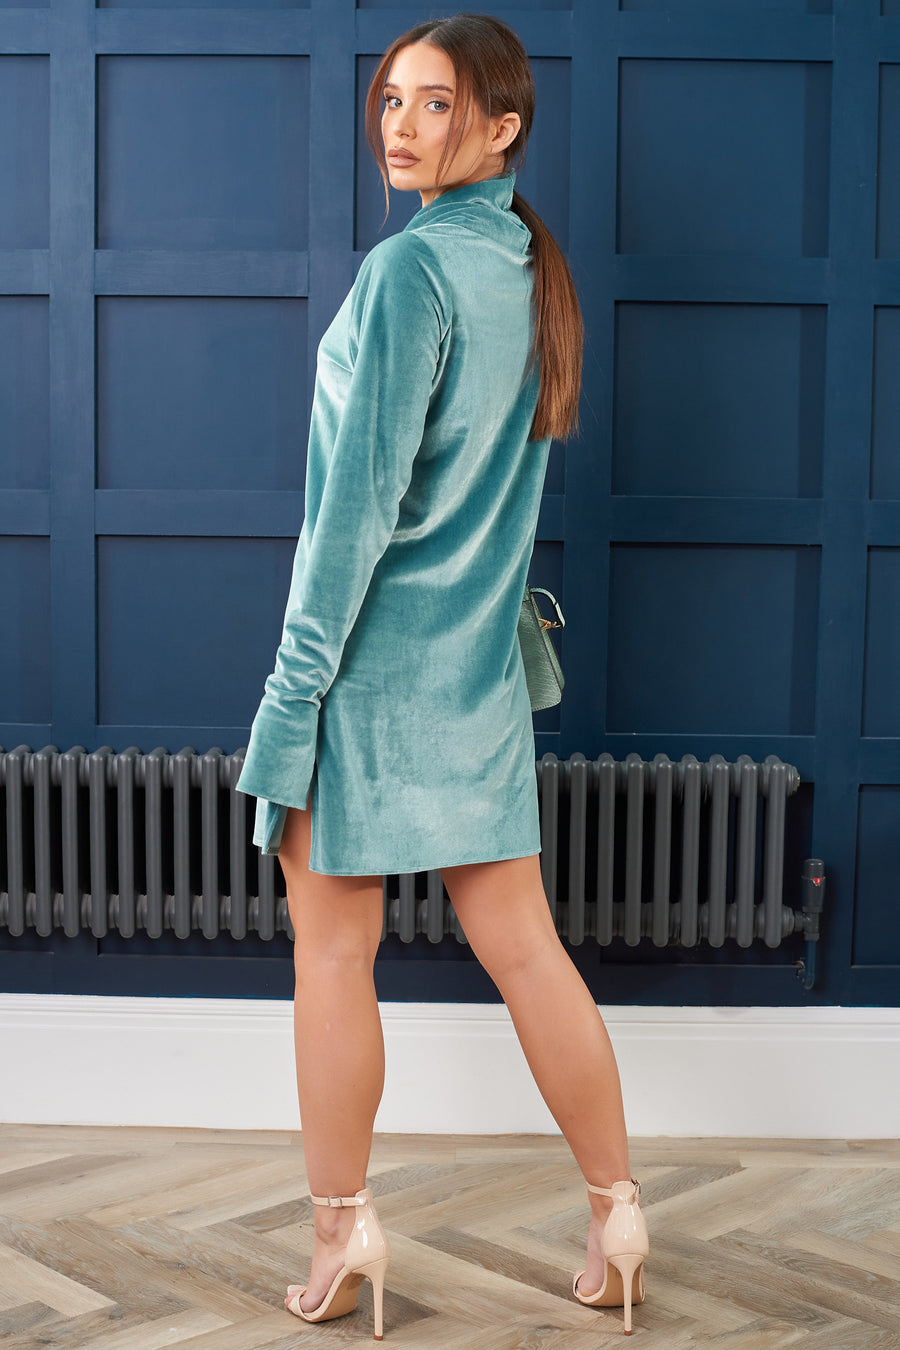 Teal Velvet Sweater Dress - SALE - Size 10